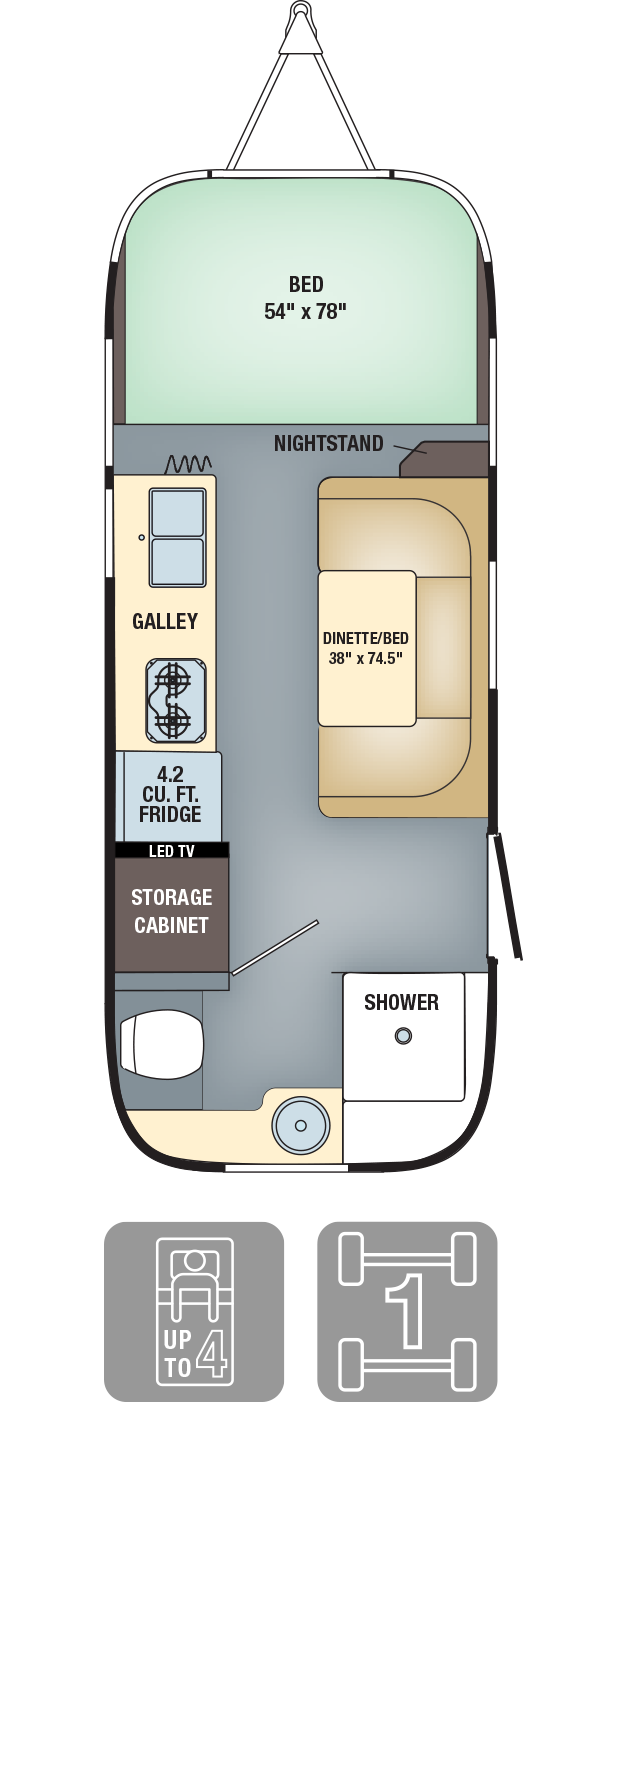 Pin On Airstream Dreamin